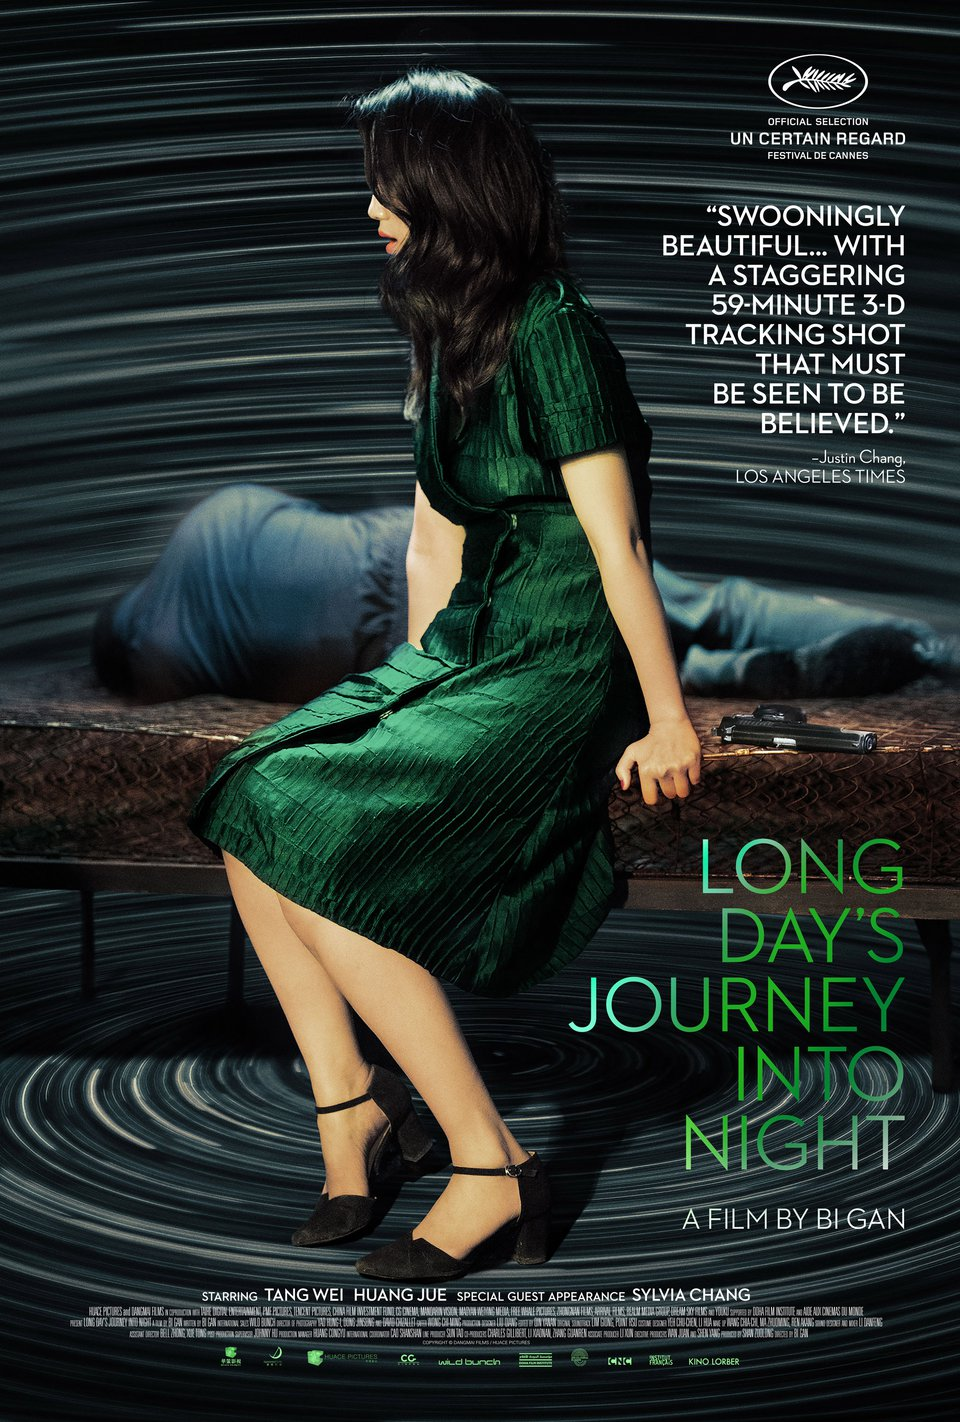 Long Day's Journey Into Night 2019 U.S. One Sheet Poster